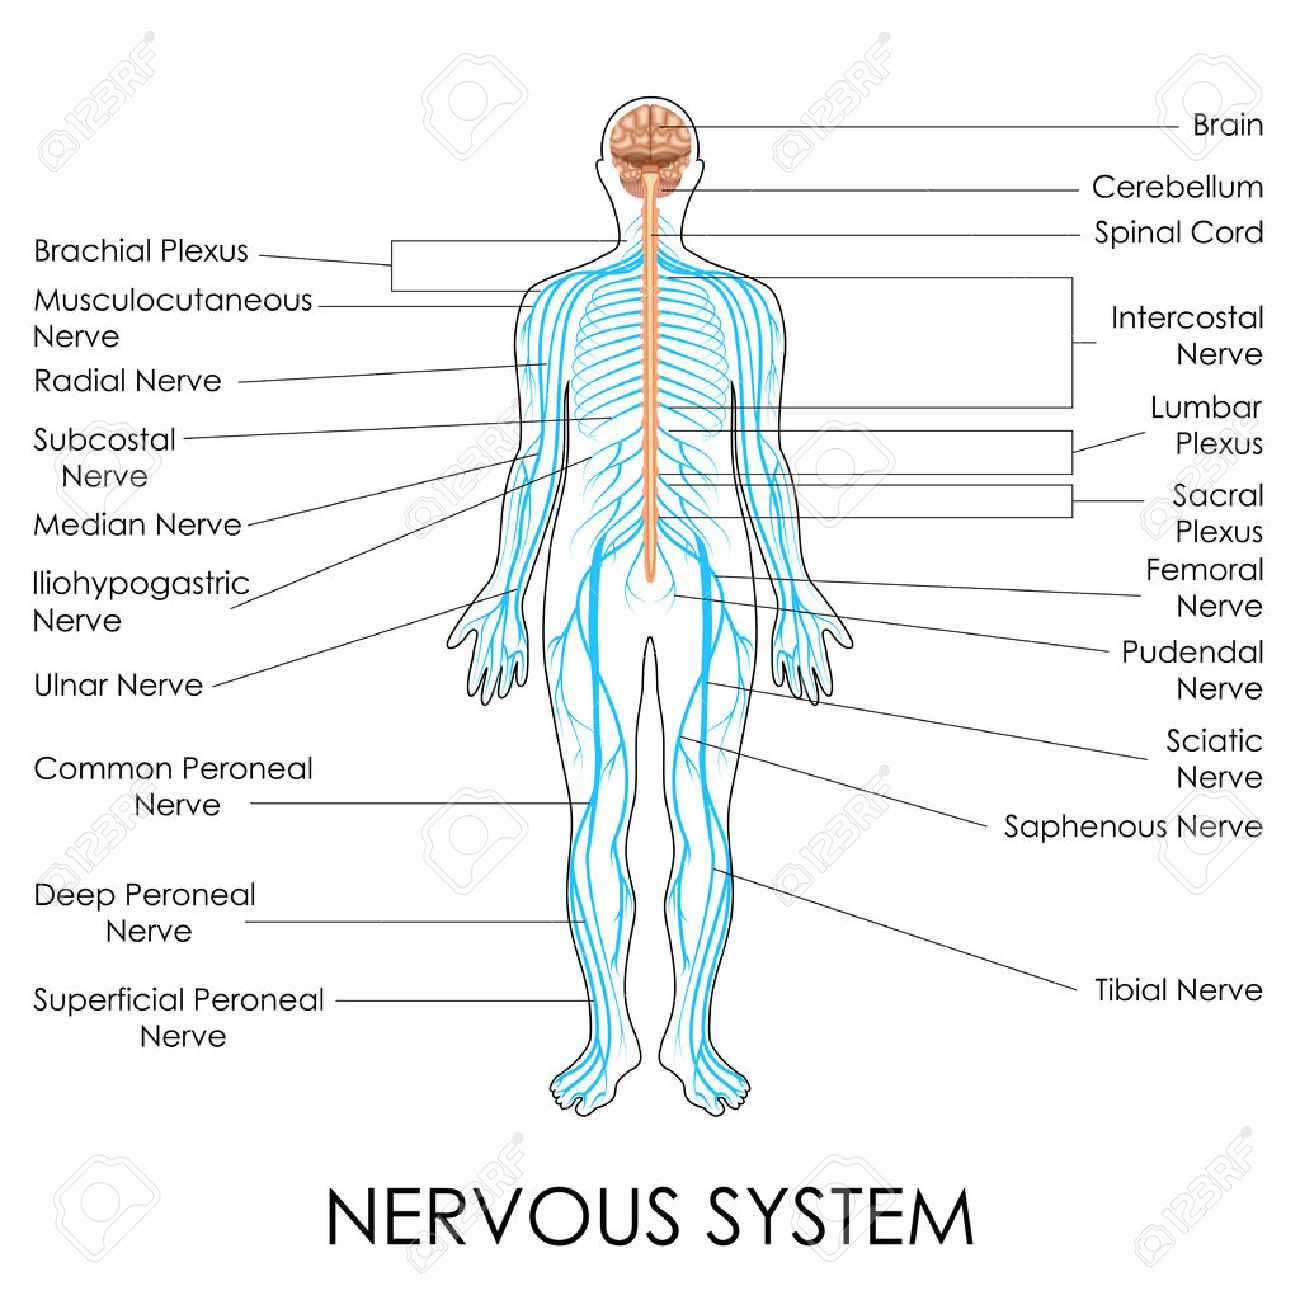 Diagram Of Nervous System Trusted Wiring Diagram